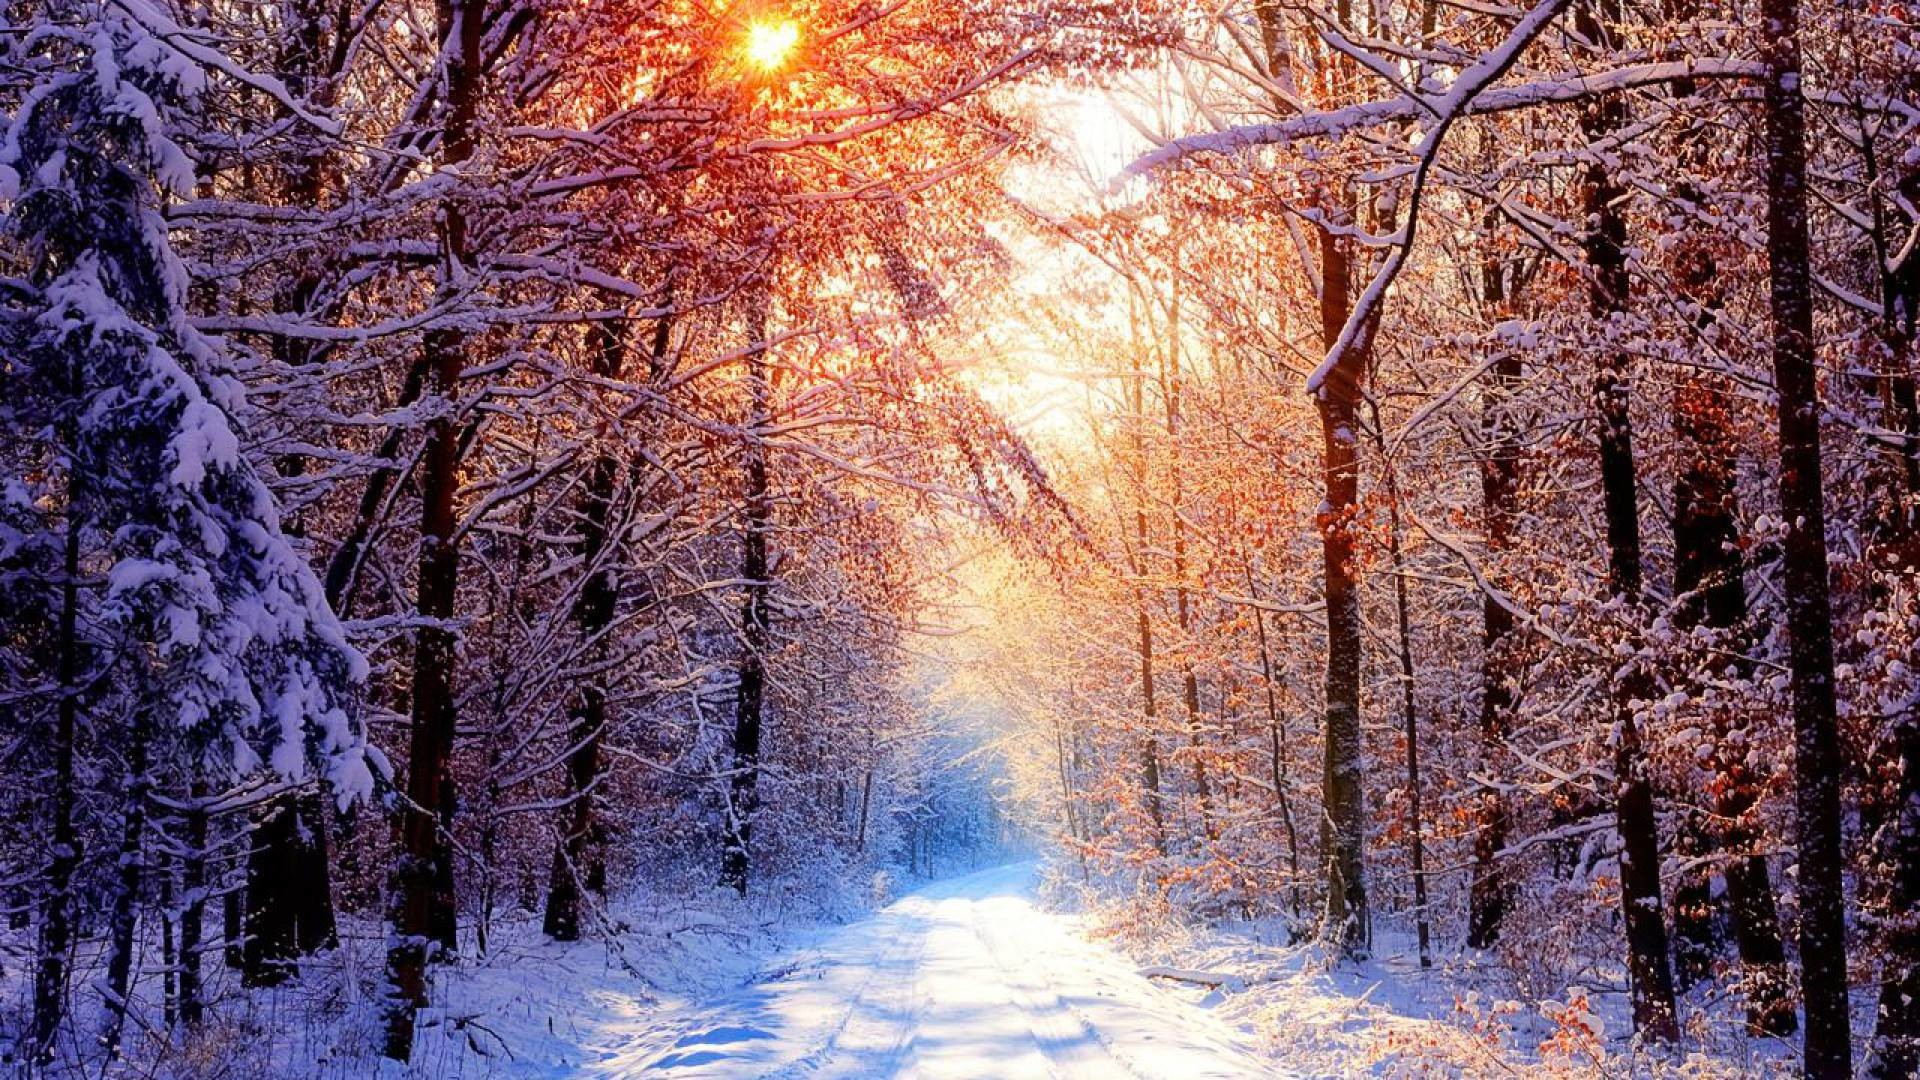 Like or share Creek Winter Forest Wallpapers X Winter Snowy Forest .